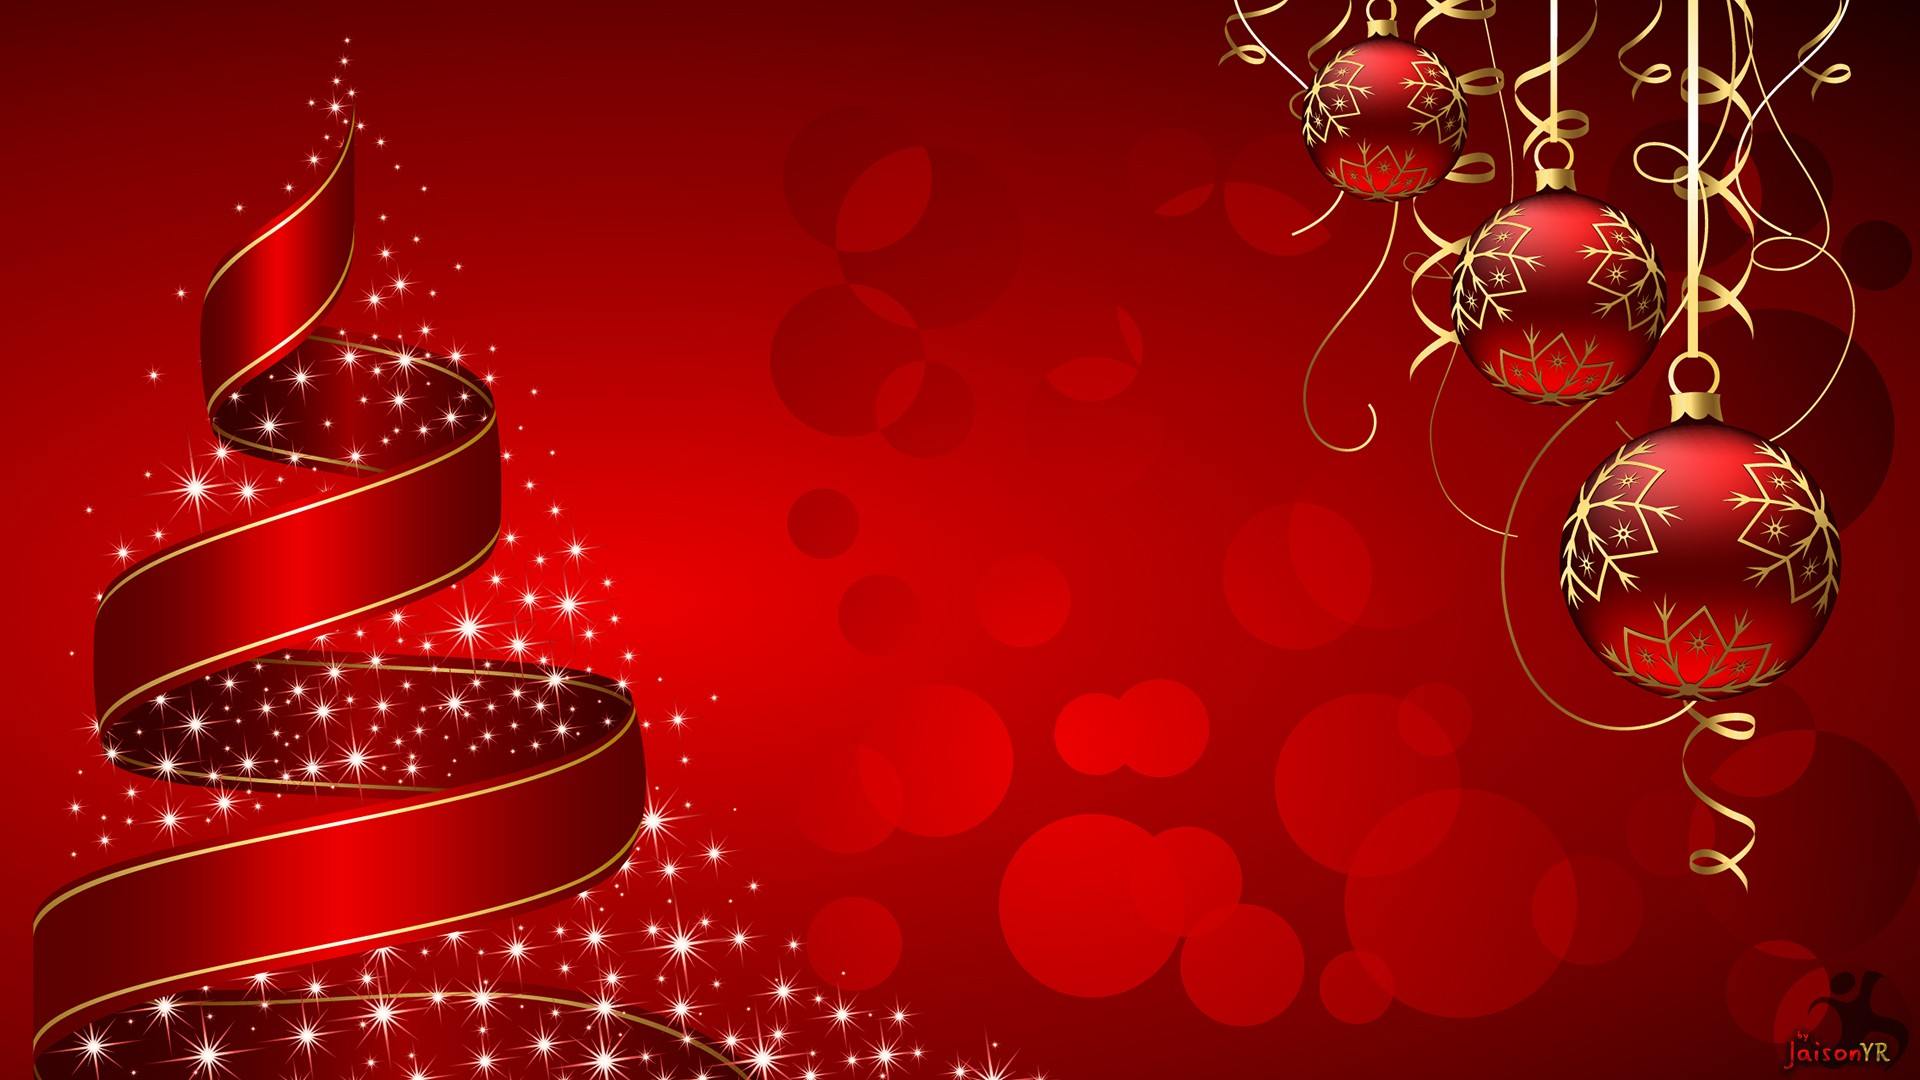 36 red christmas backgrounds download free stunning hd